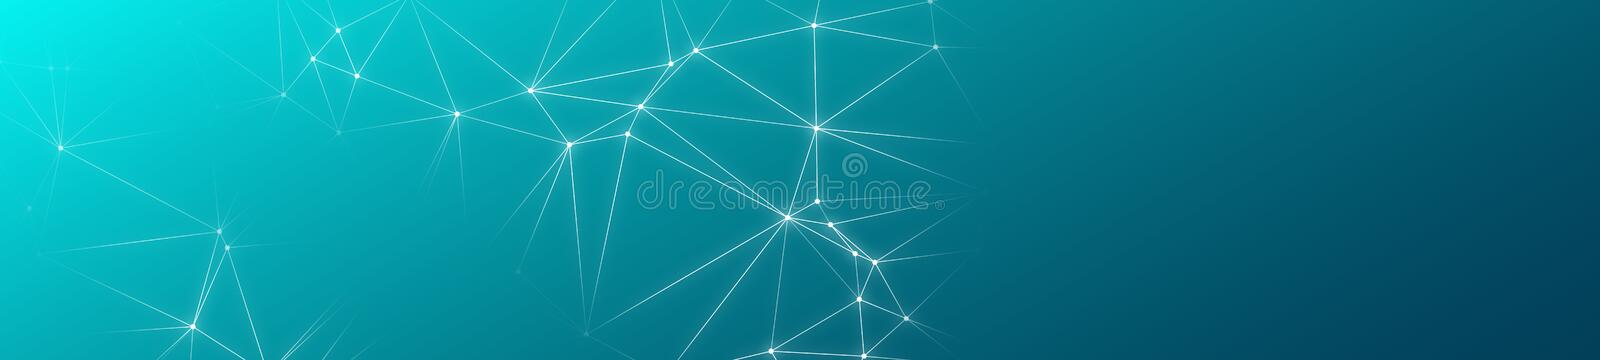 Creative banner background, lines and circles connected. Random lines connected new technology or medicine banner concept stock illustration